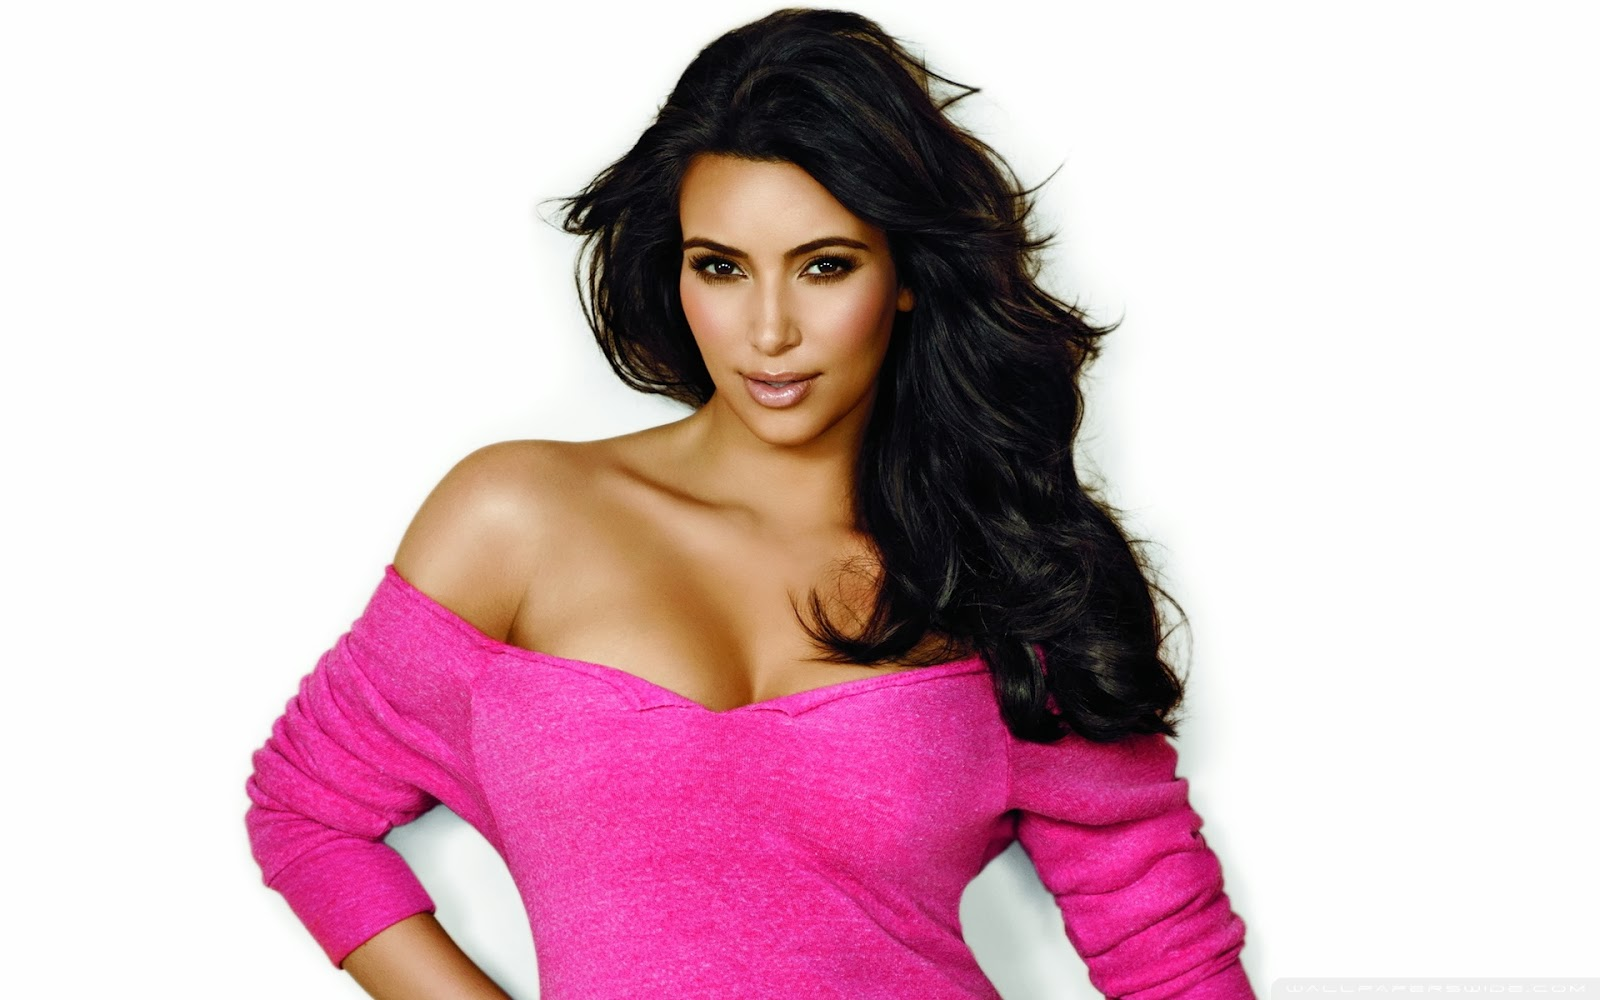 Mobile Hd Wallpaper Kim Kardashian Wallpapers 1600x1000